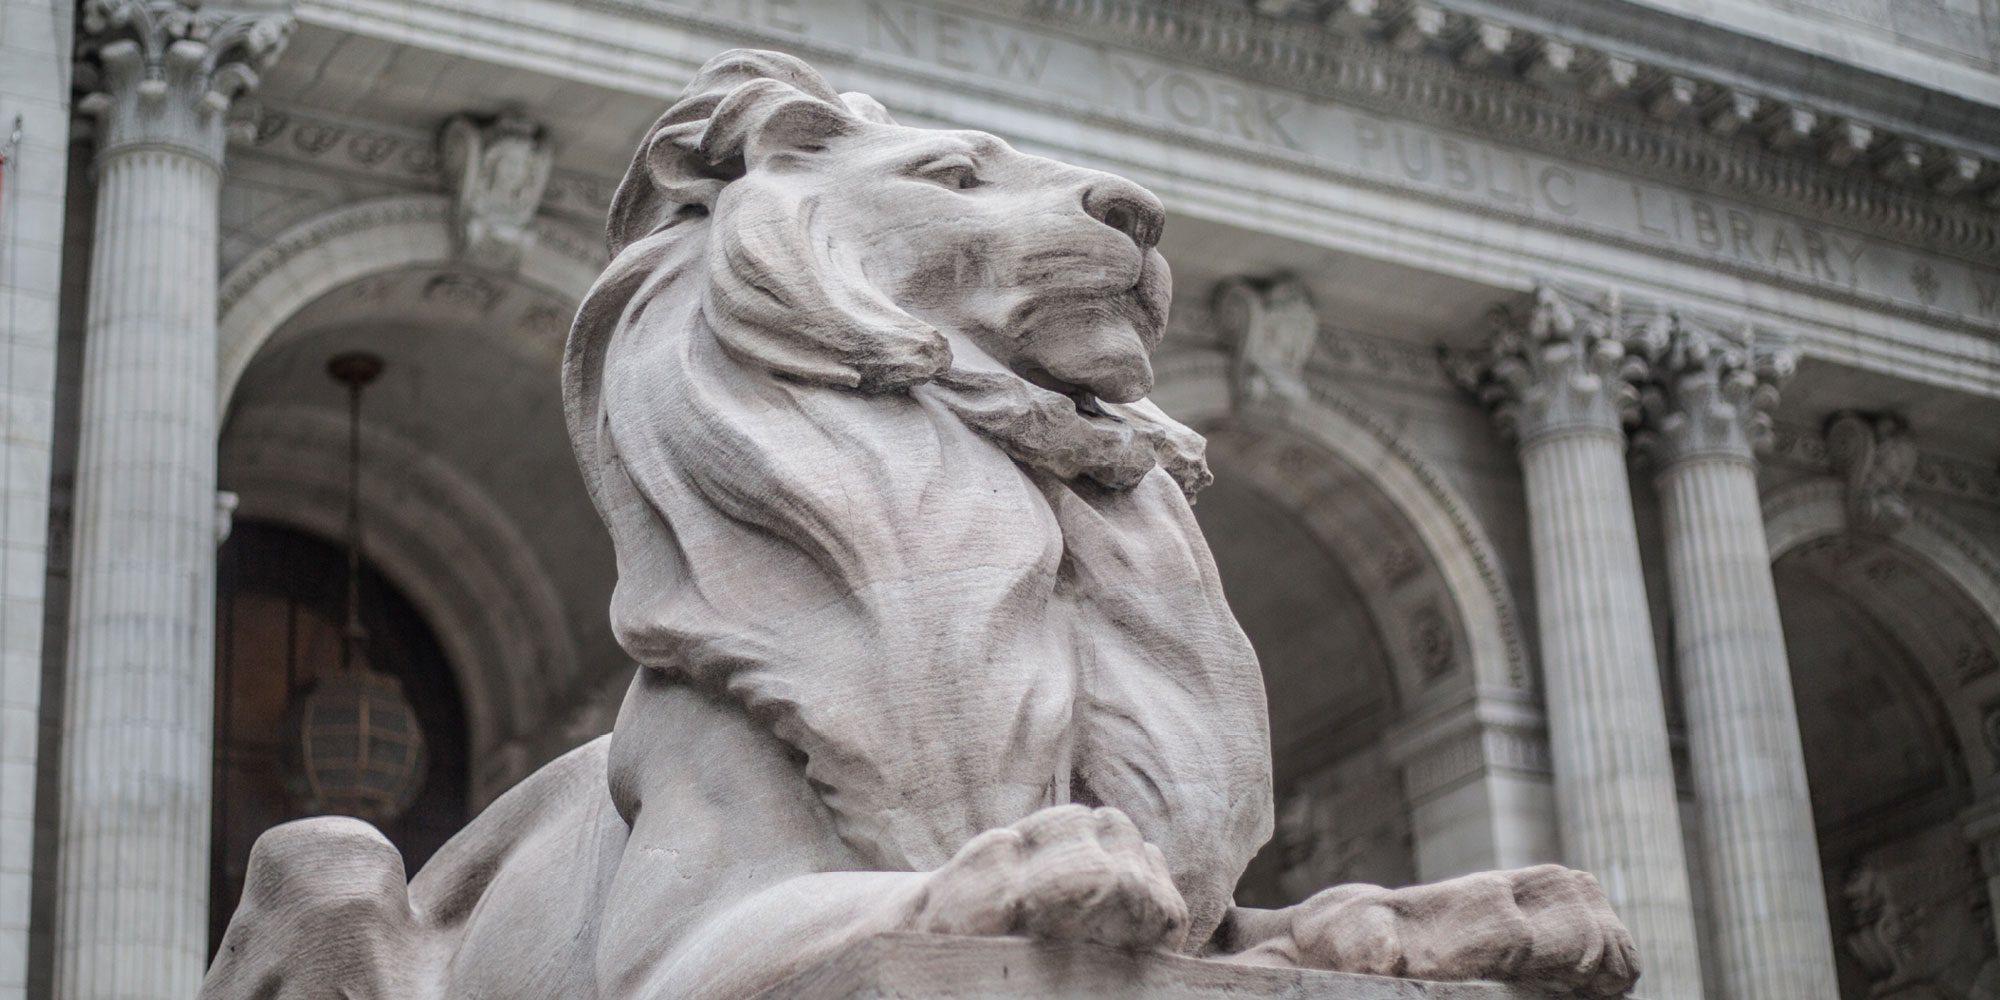 A statue of Patience the lion against the facade of NYPL